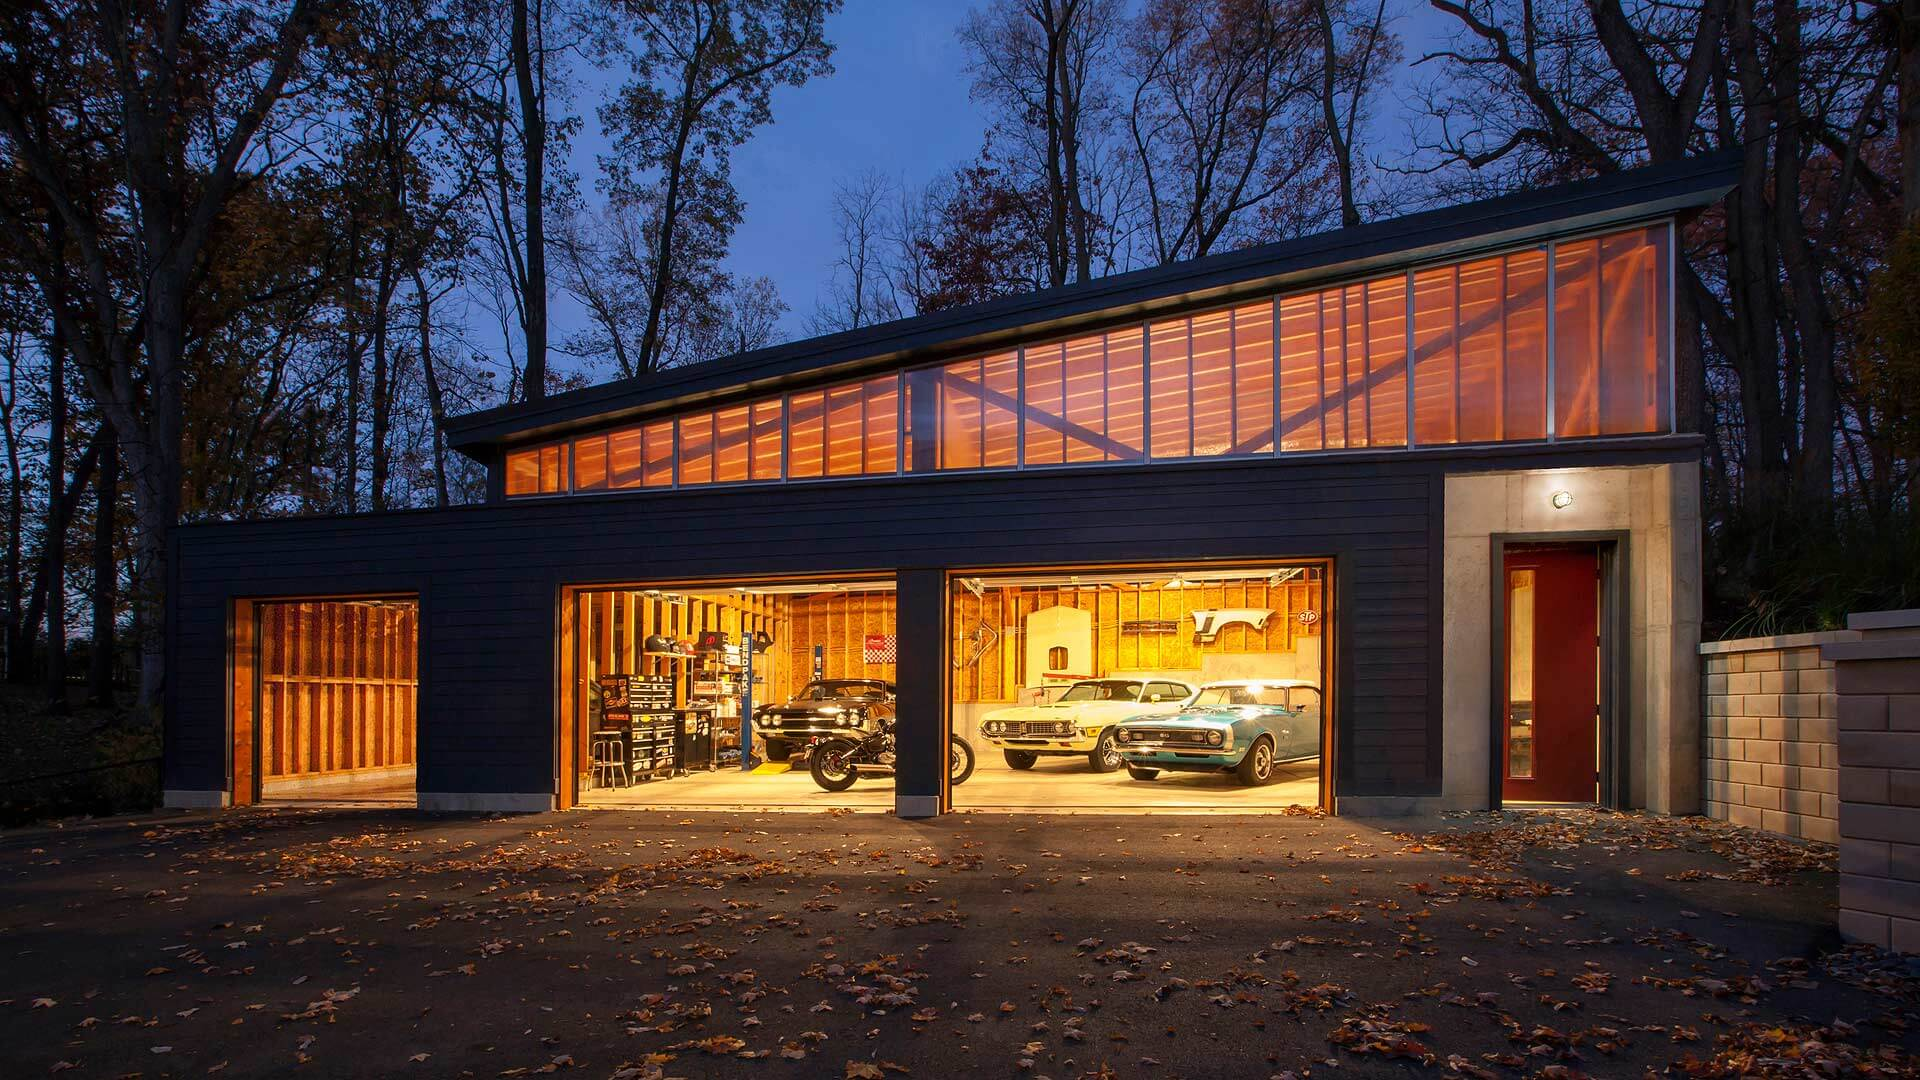 Front view of of auto garage workshop at dawn features raised clerestory shed roof that compliments the lines of pre-existing house - Vintage Modern Garage - 1950's Midcentury Modern Renovation & Detached Workshop Addition, Traders Point Lake - Lakeside, 7150 Lakeside Drive, Indianapolis, Indiana - Christopher Short, Paul Reynolds, Indianapolis Architects, HAUS | Architecture For Modern Lifestyles